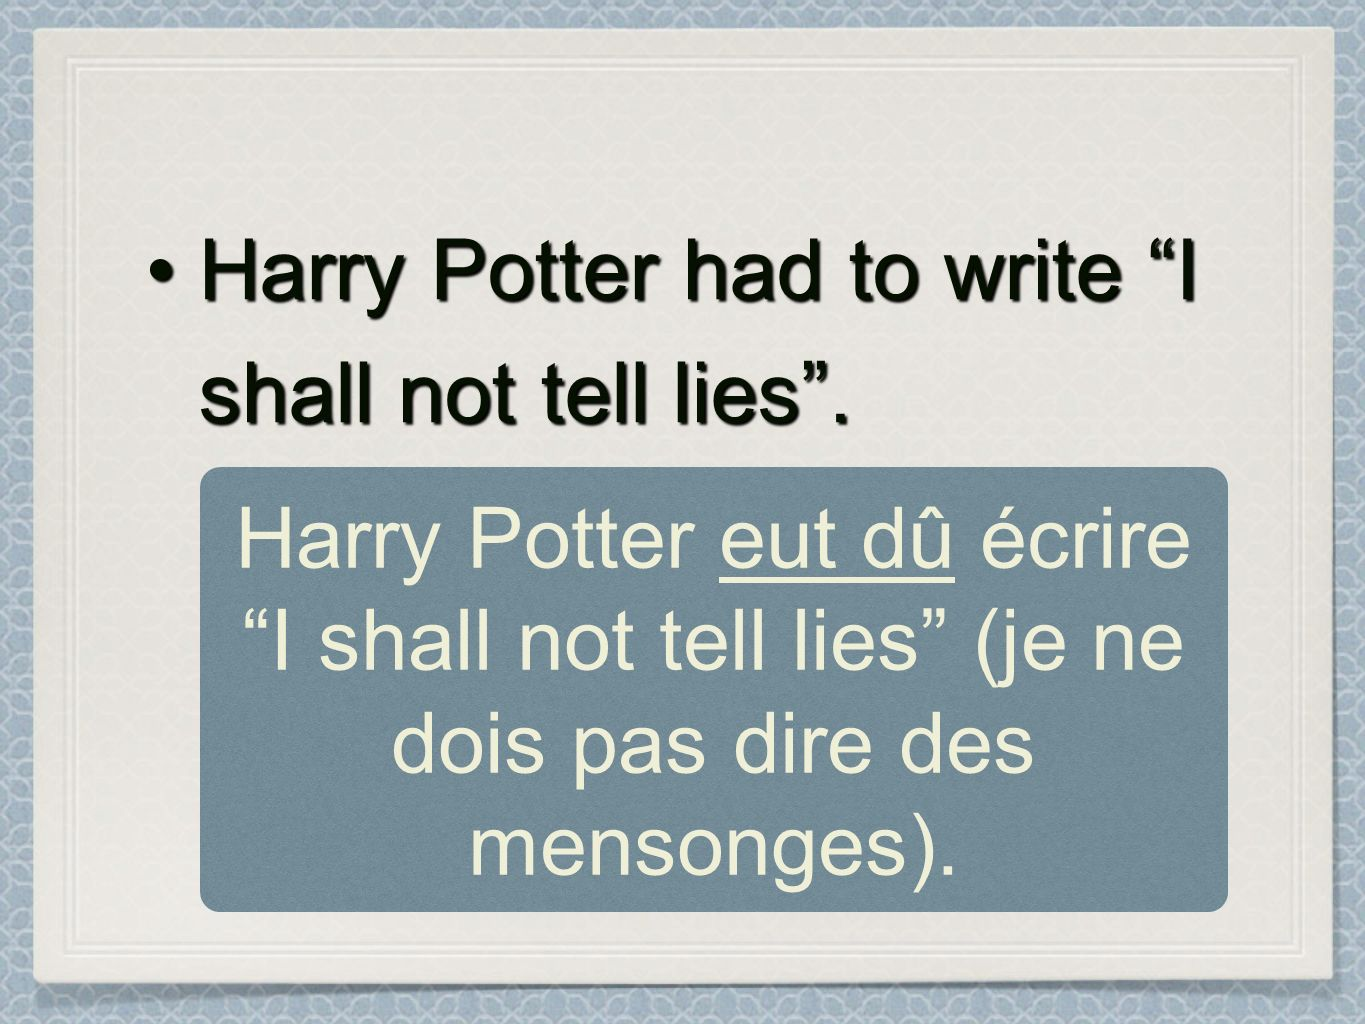 Harry Potter had to write I shall not tell lies .